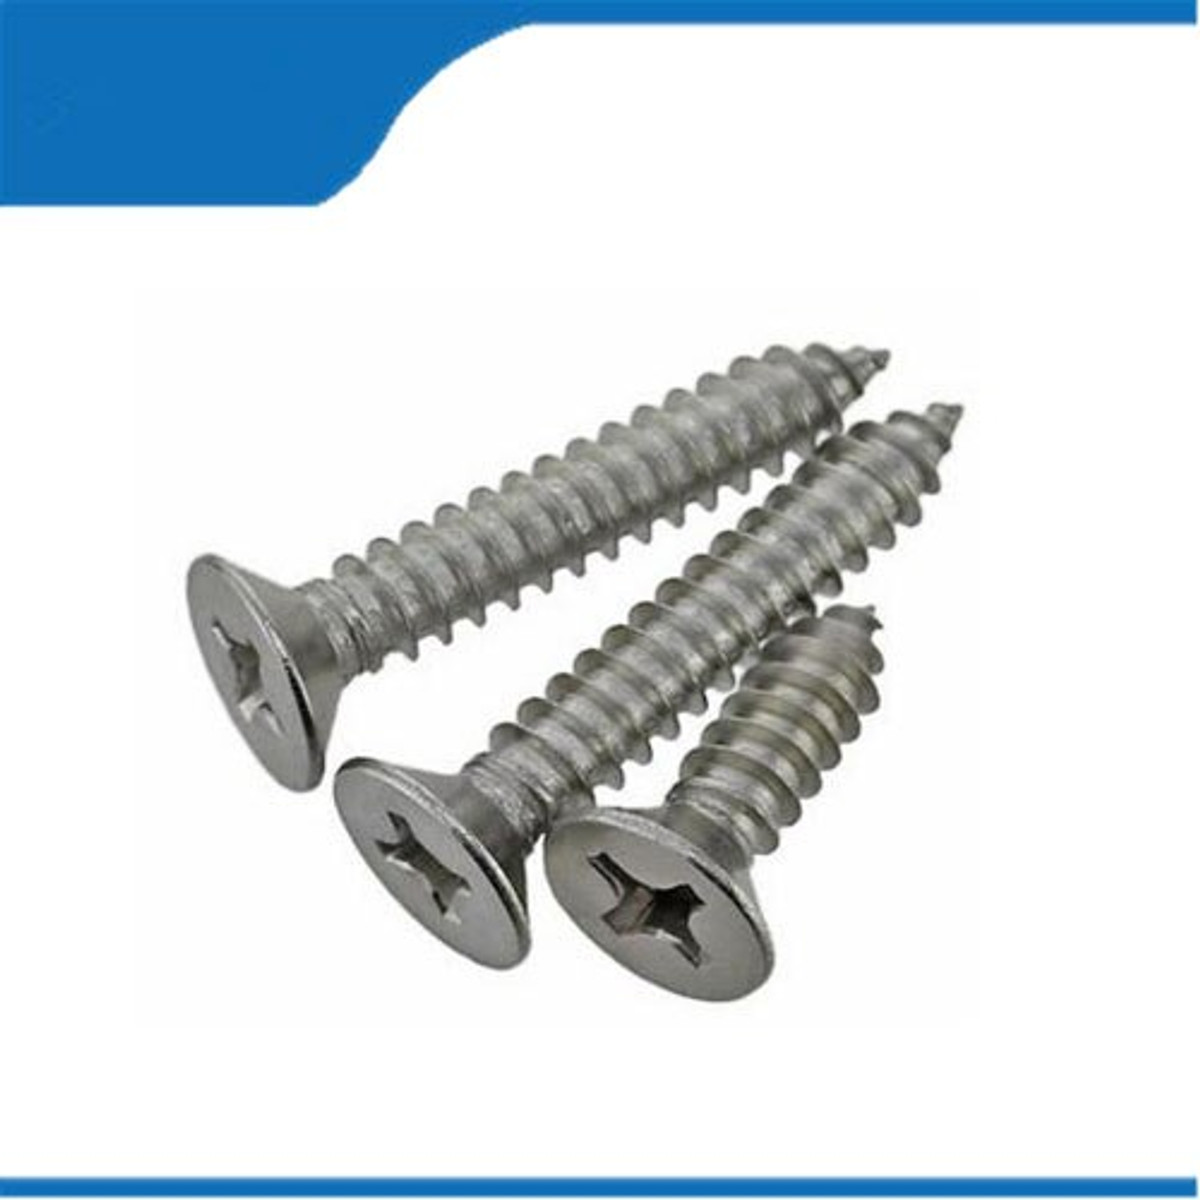 6 X 5/8 Sheet Metal Screw. Stainless Steel, Countersunk 82°. Phillips A Point